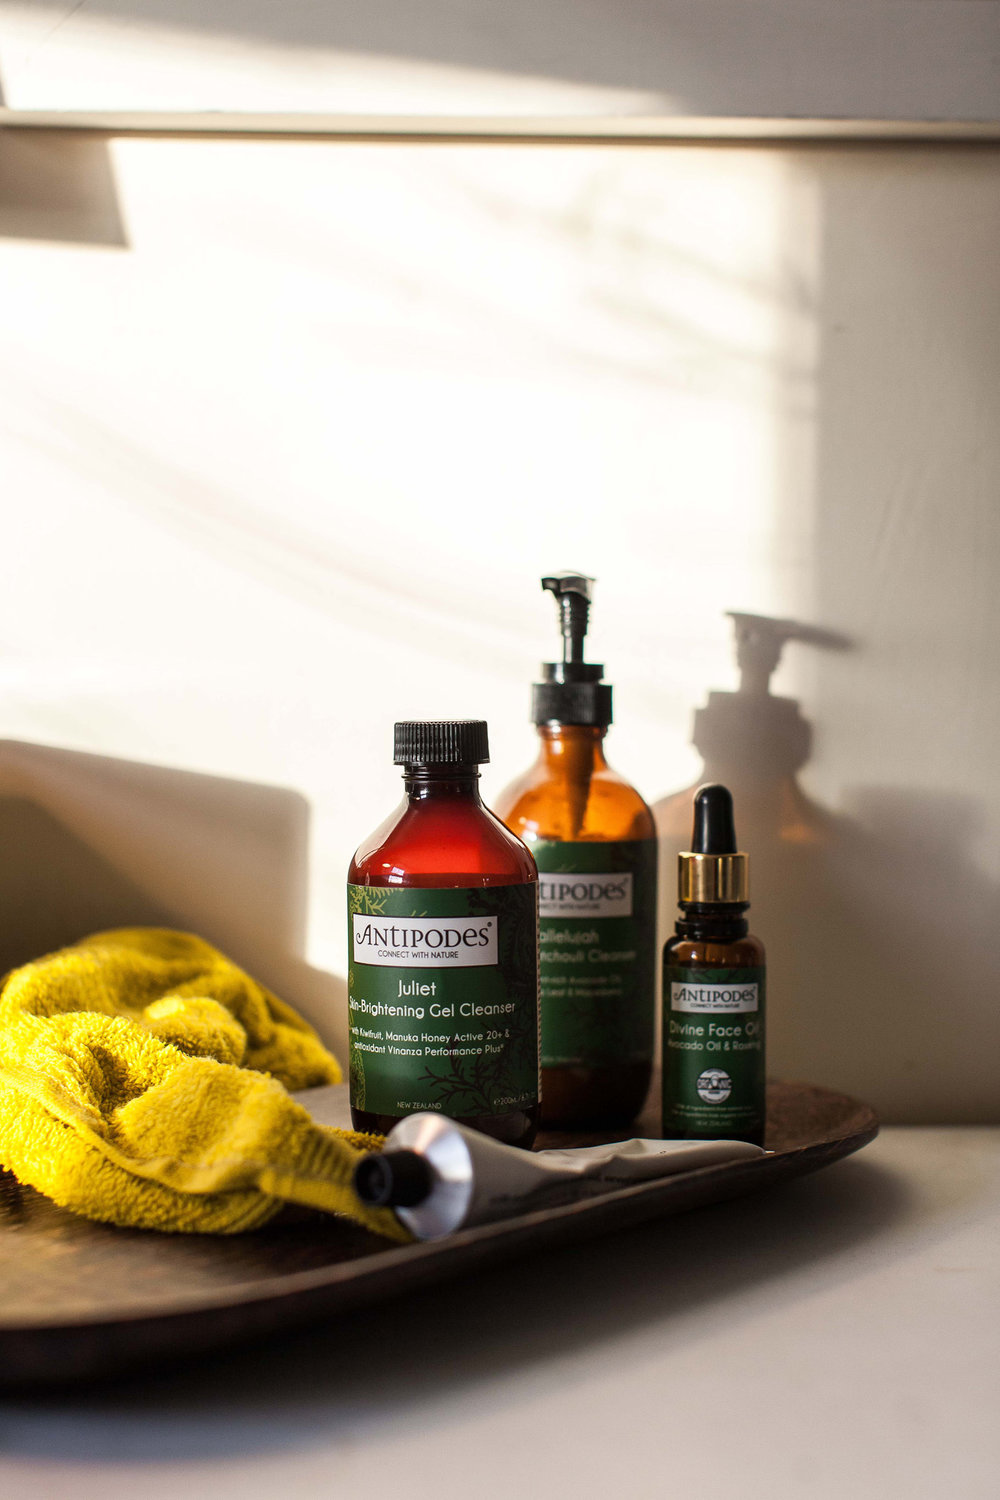 Antipodes are an organic, natural skincare brand from New Zealand. Read more about them on retreatblog.co.uk.